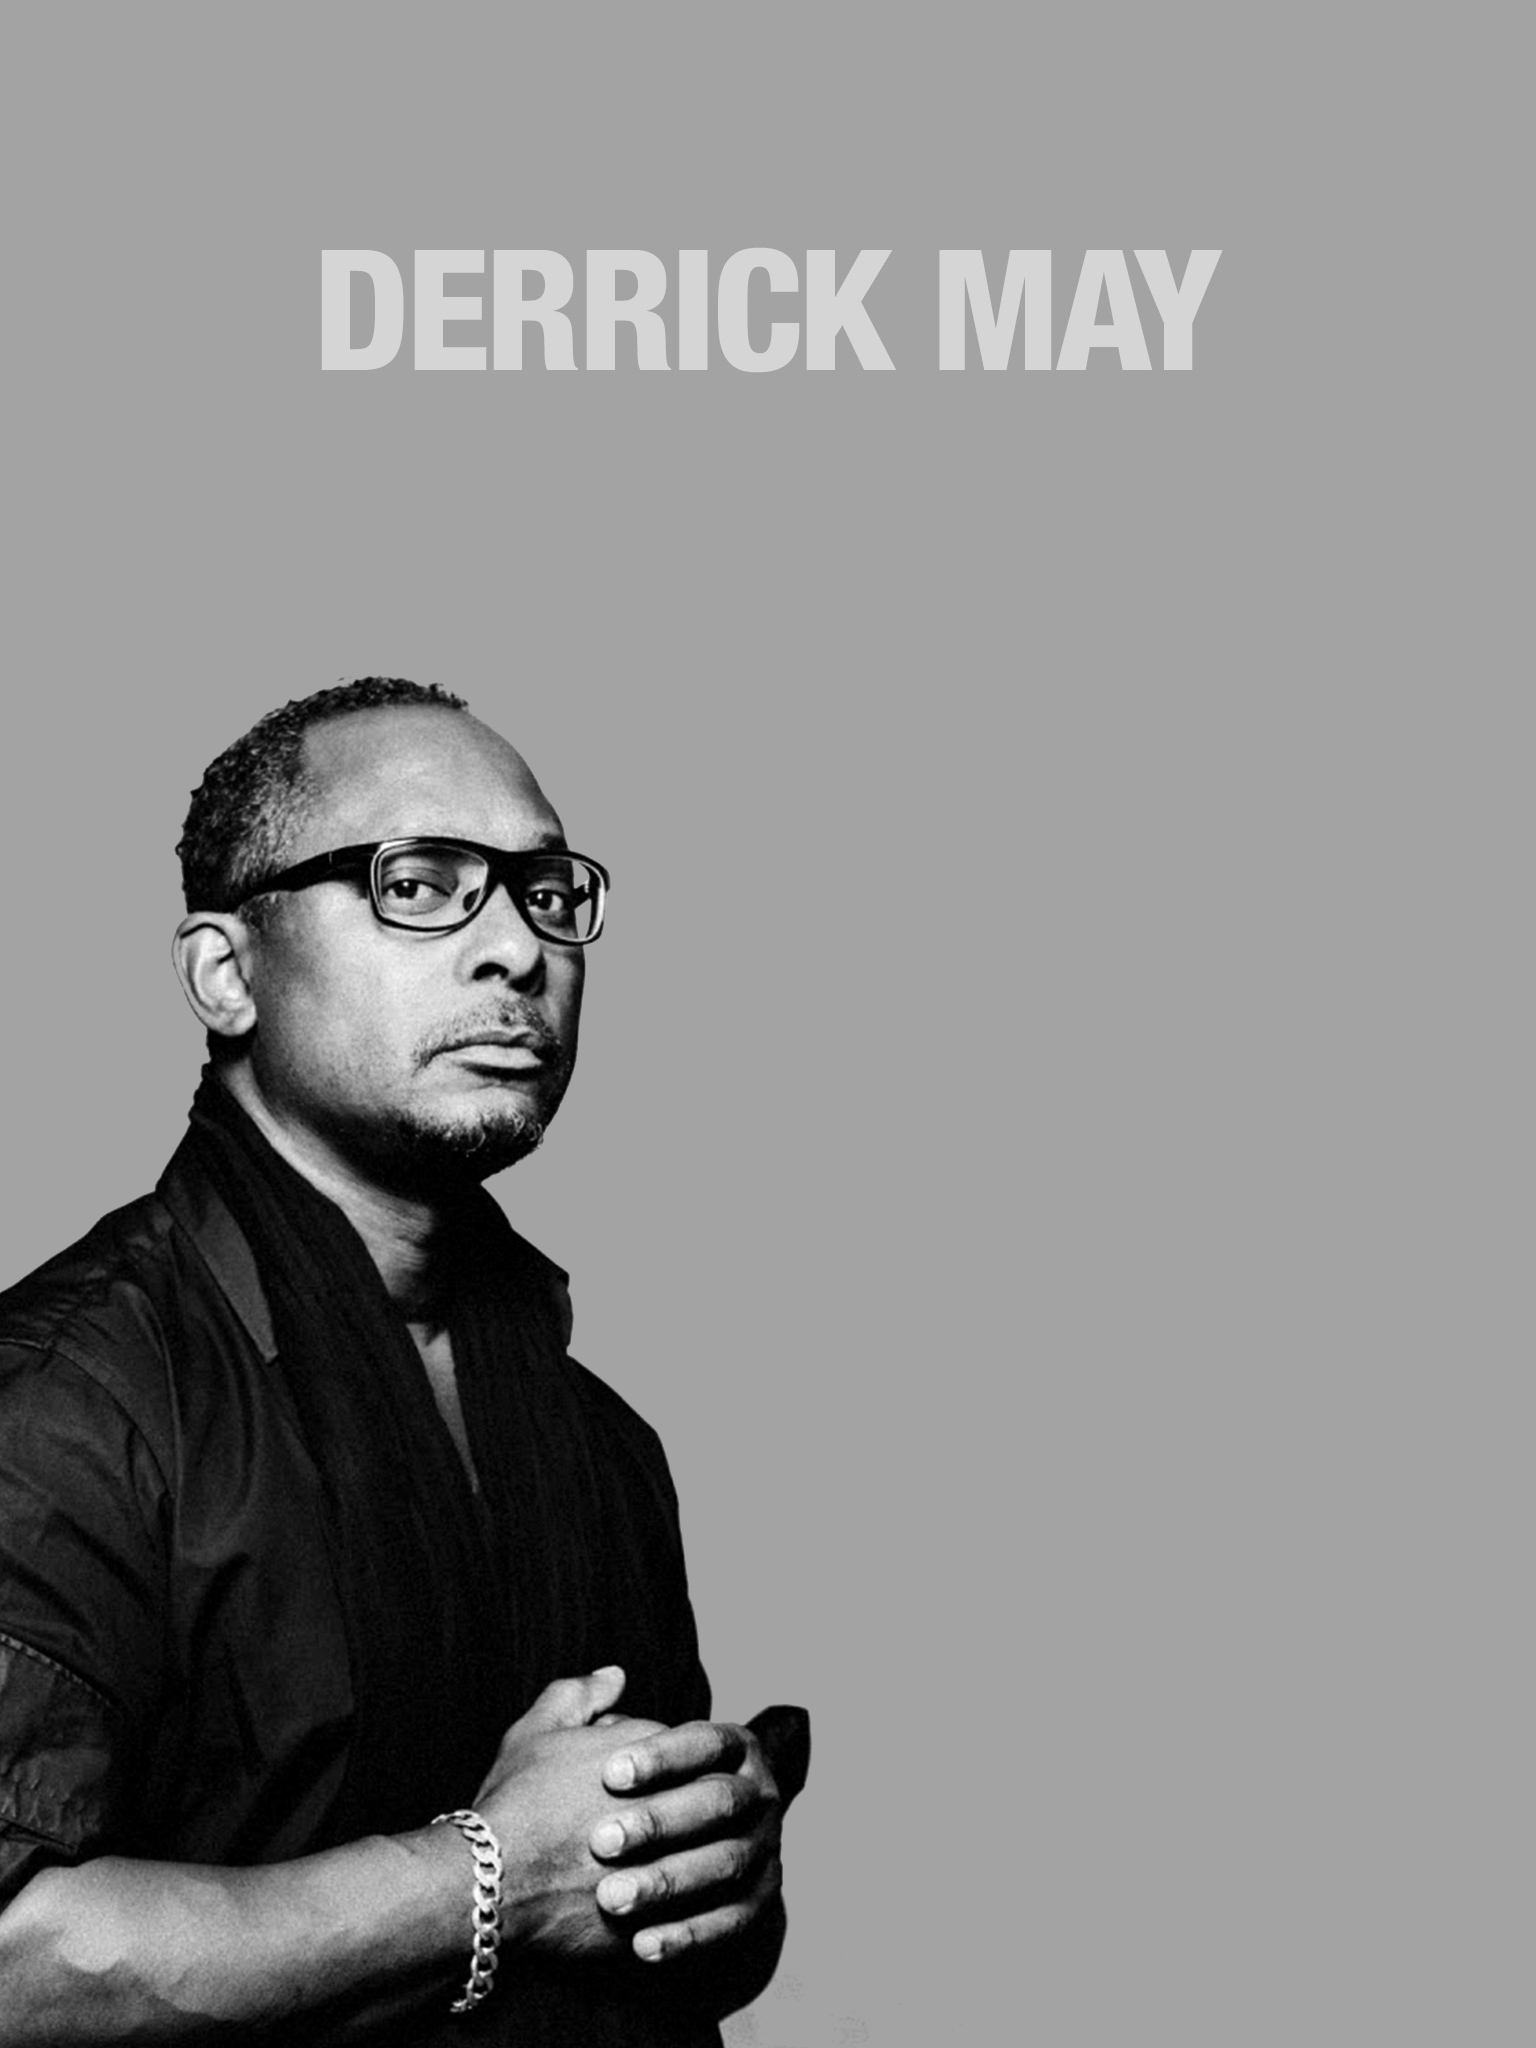 Women provide accounts of sexual harassment and assault by Derrick May